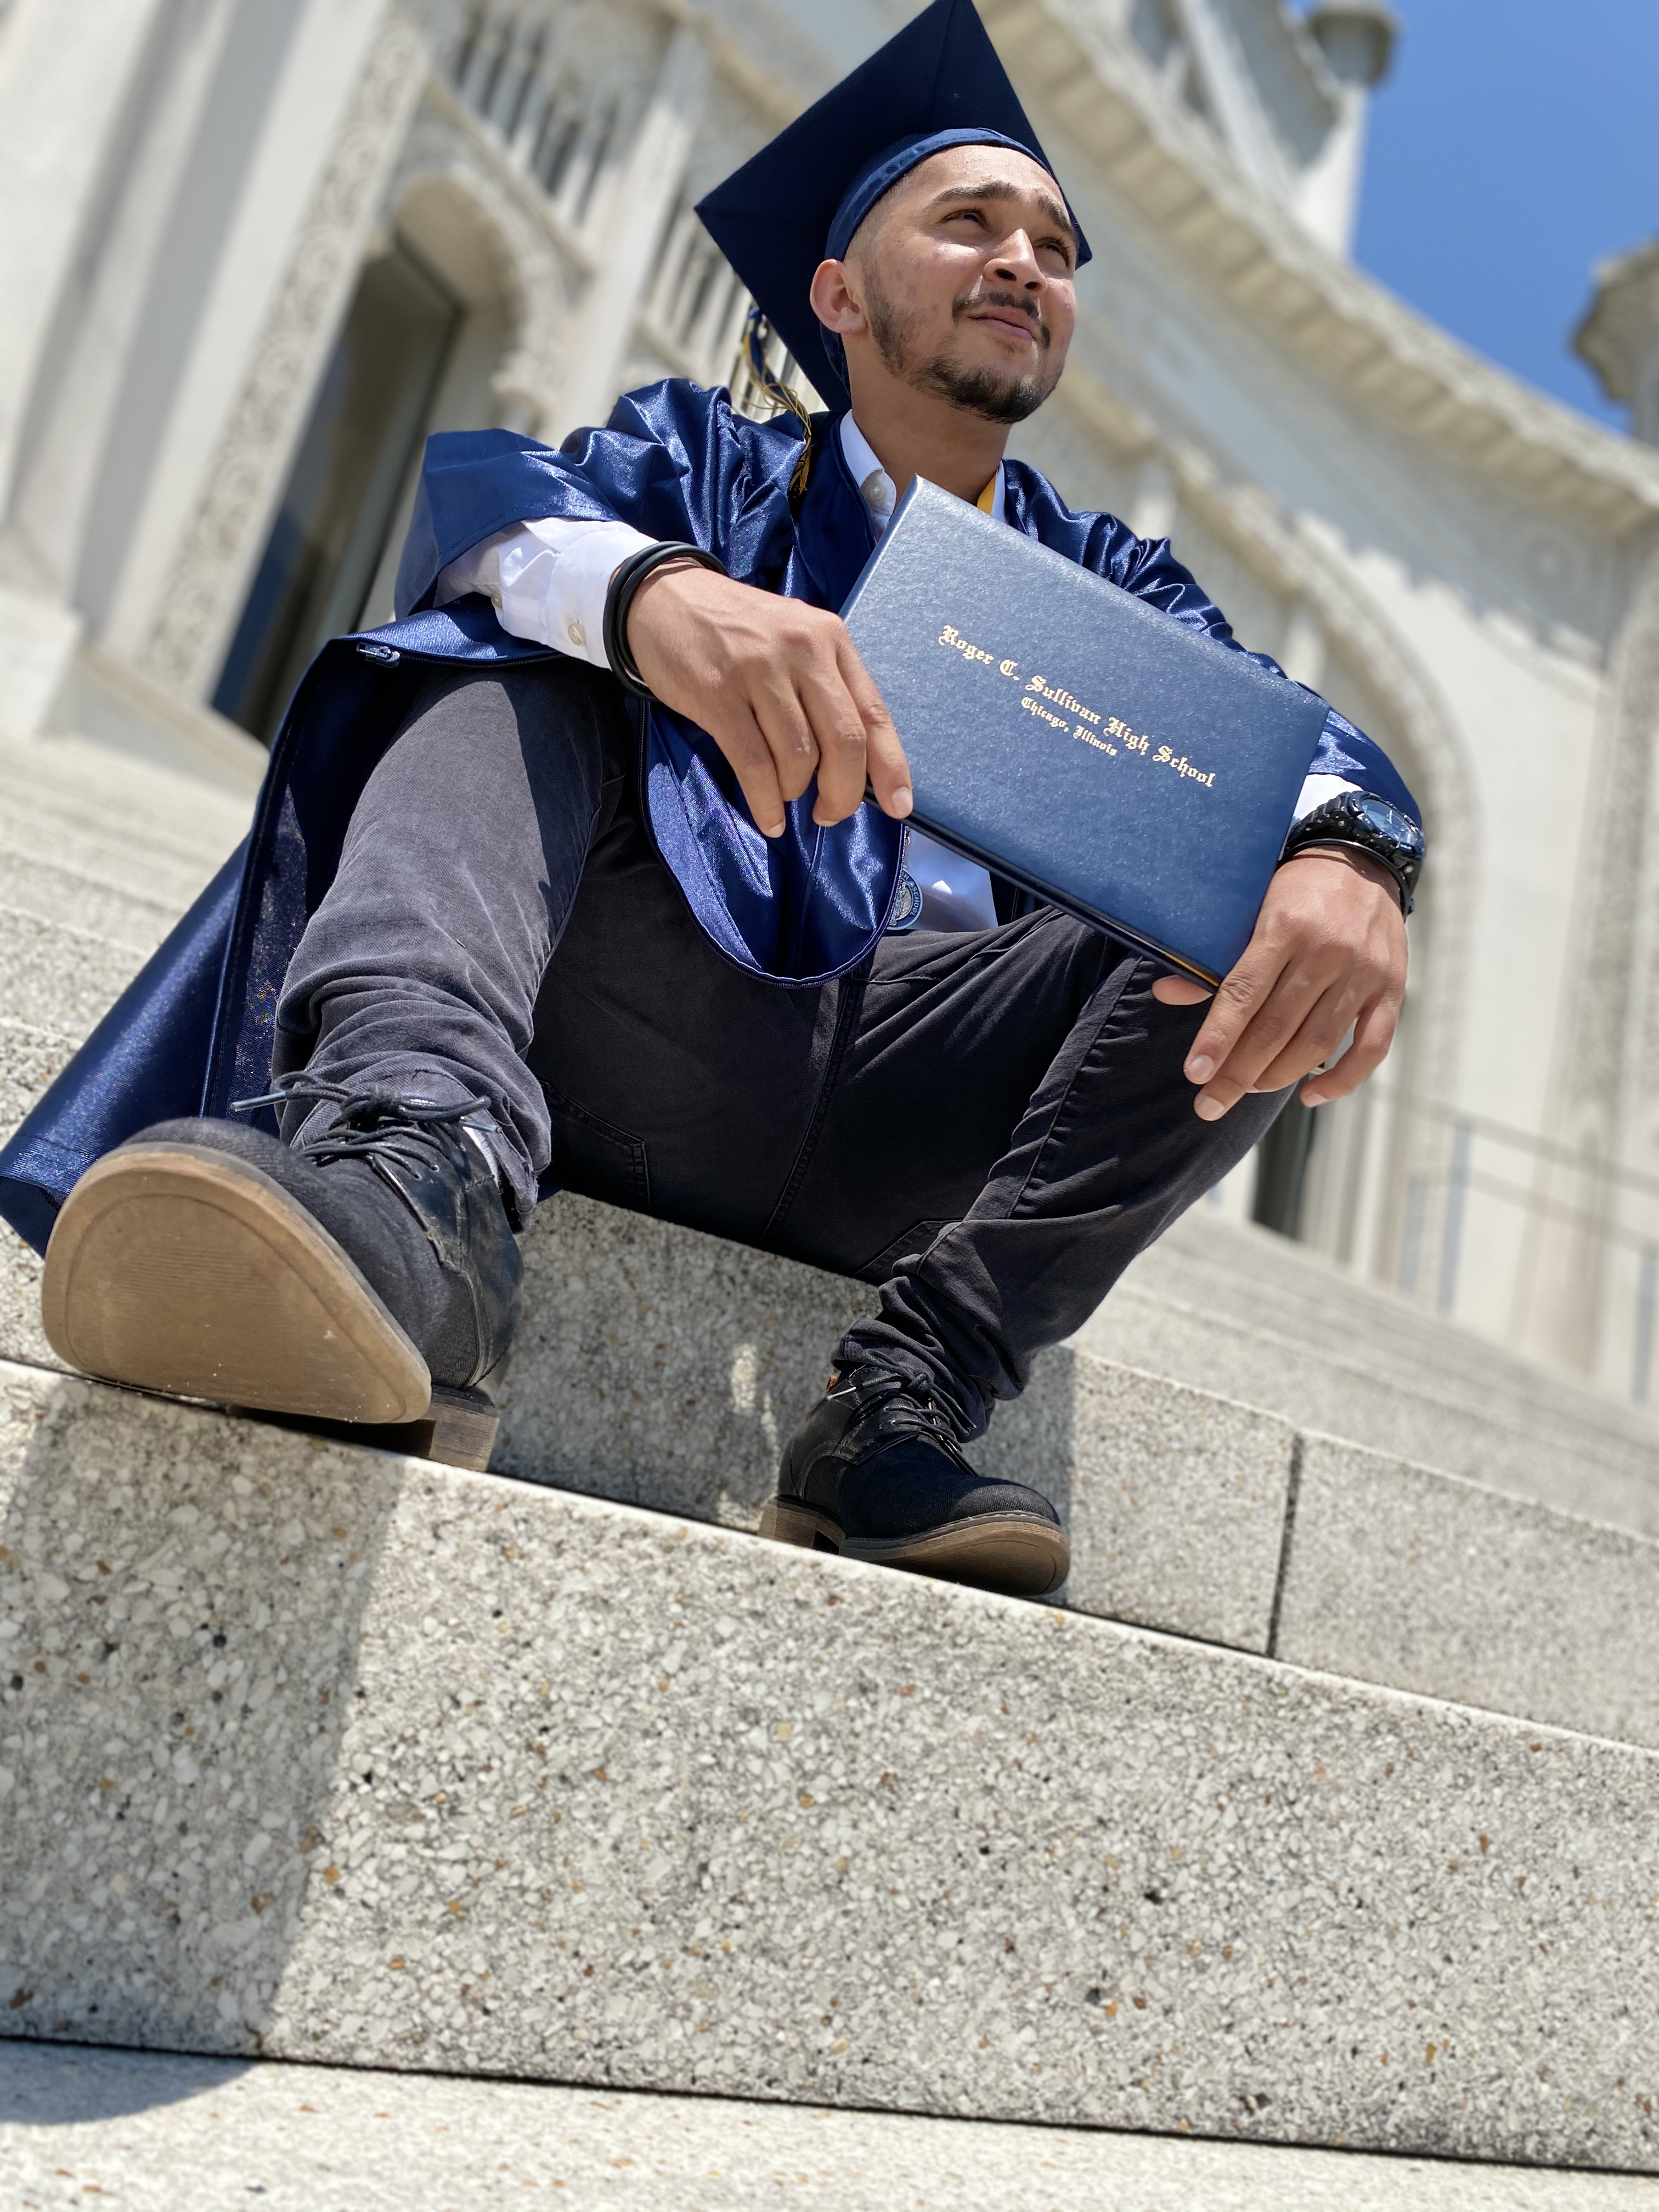 A young man in a blue cap and gown looks into the distance while centering his high school diploma. The photo is taken from a few steps down, increasing the grandeur of his accomplishment through the angle.